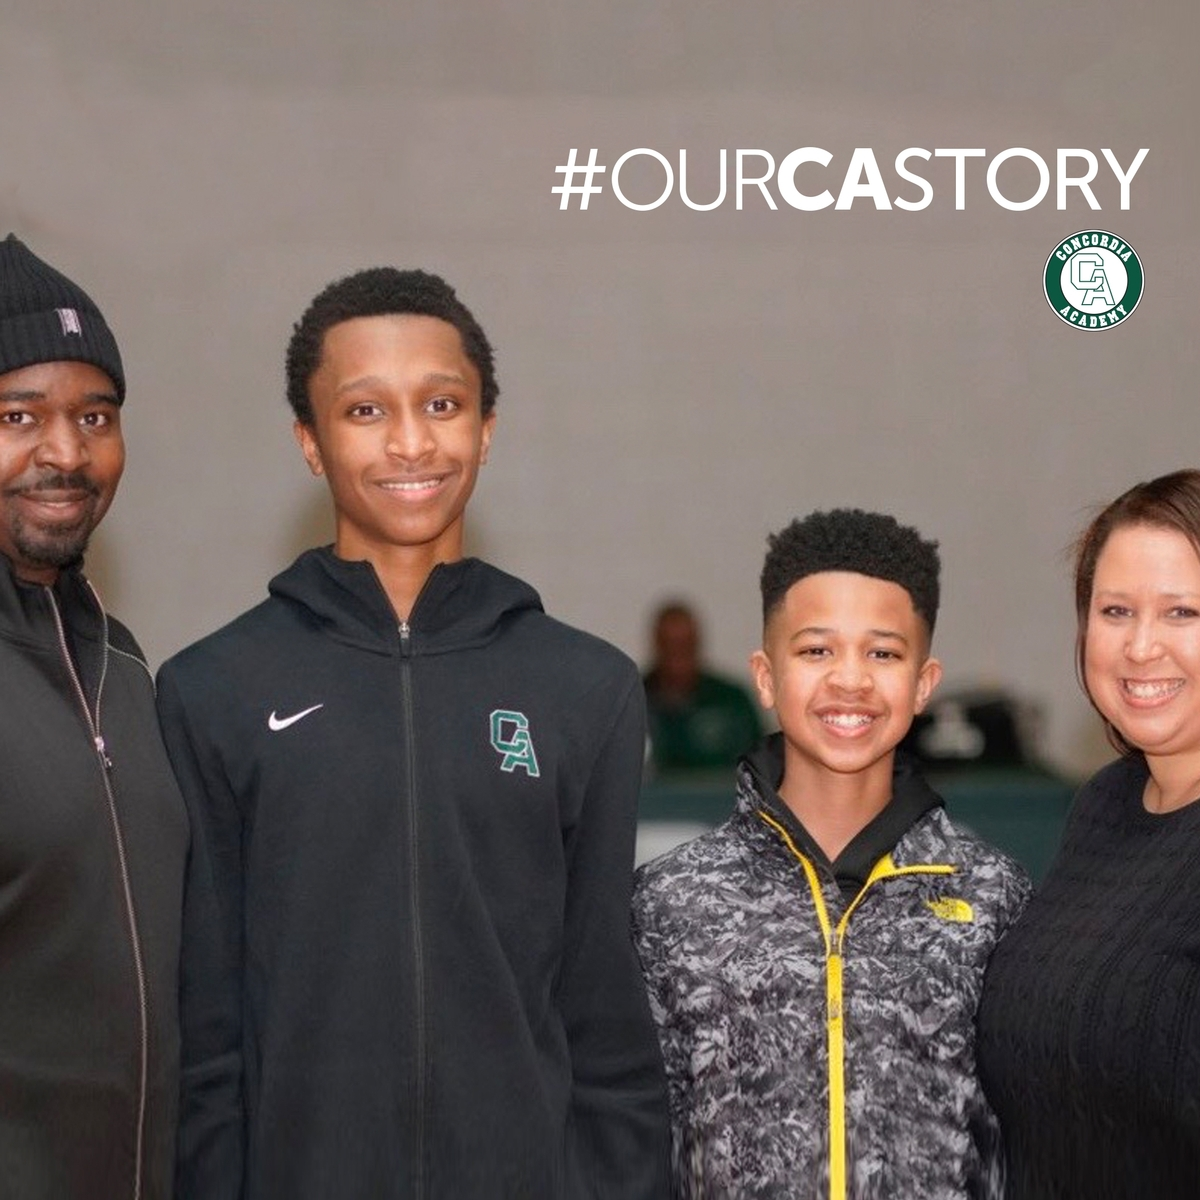 The Greene Family: Our CA Story